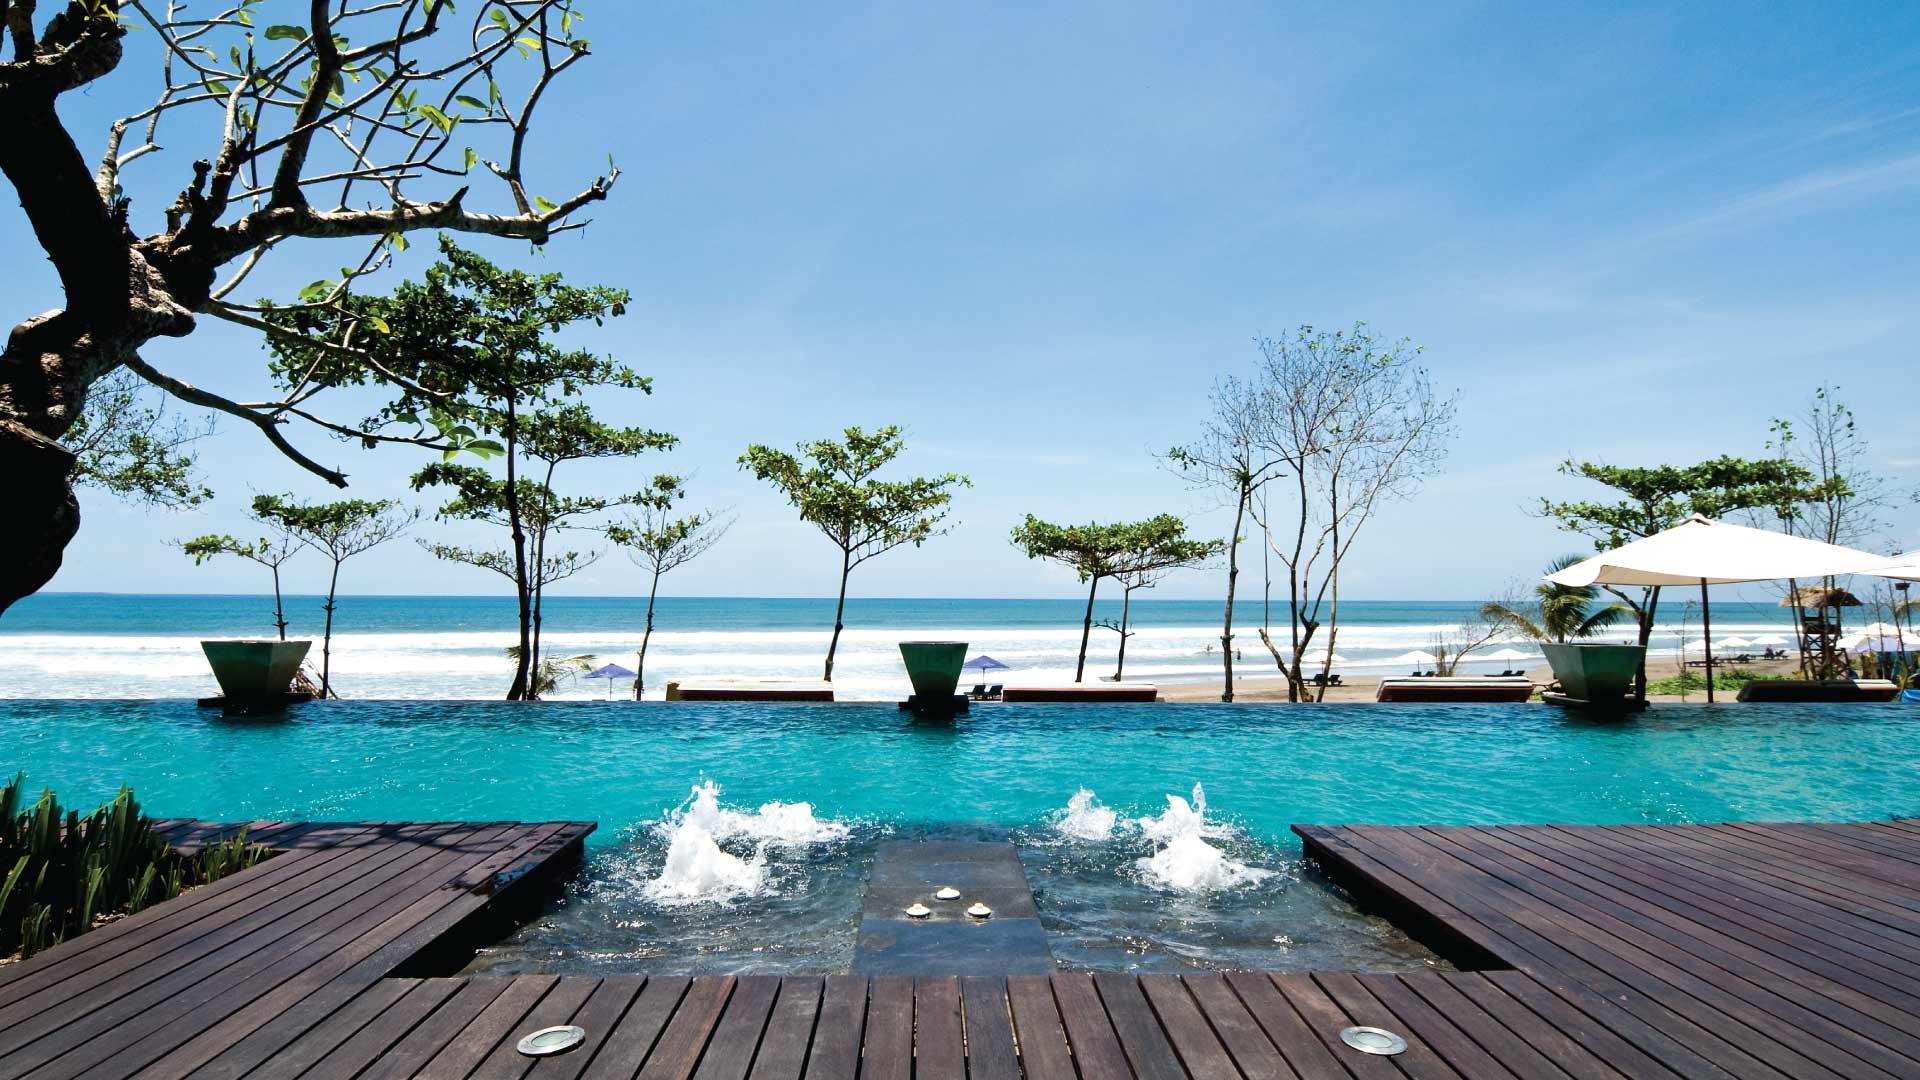 https://assets.anantara.com/image/upload/q_auto,f_auto/media/minor/anantara/images/anantara-seminyak-bali-resort/the-resort/anantara_seminyak_infinity_edge_pool_header_1920x1080.jpg